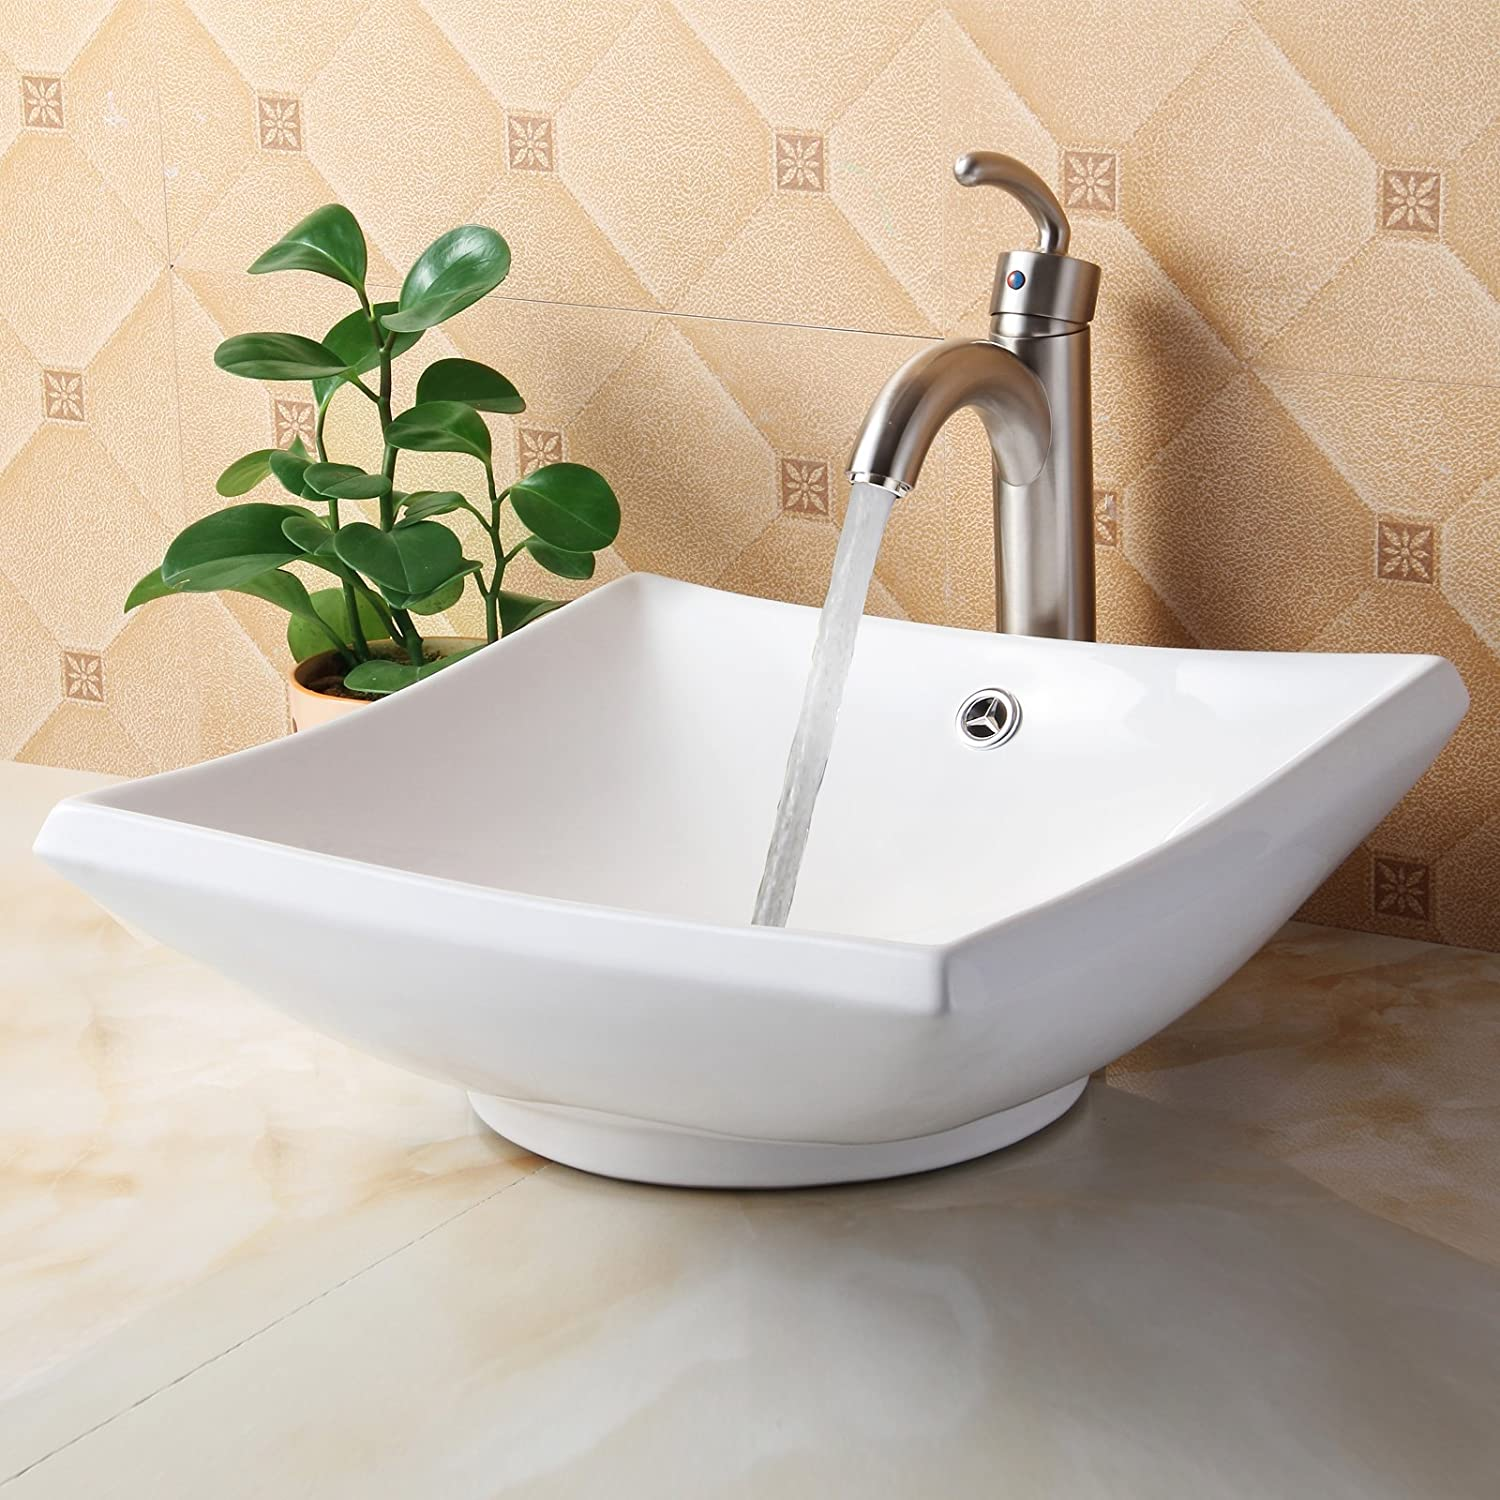 Low Cost Elite Bathroom Square White Ceramic Porcelain